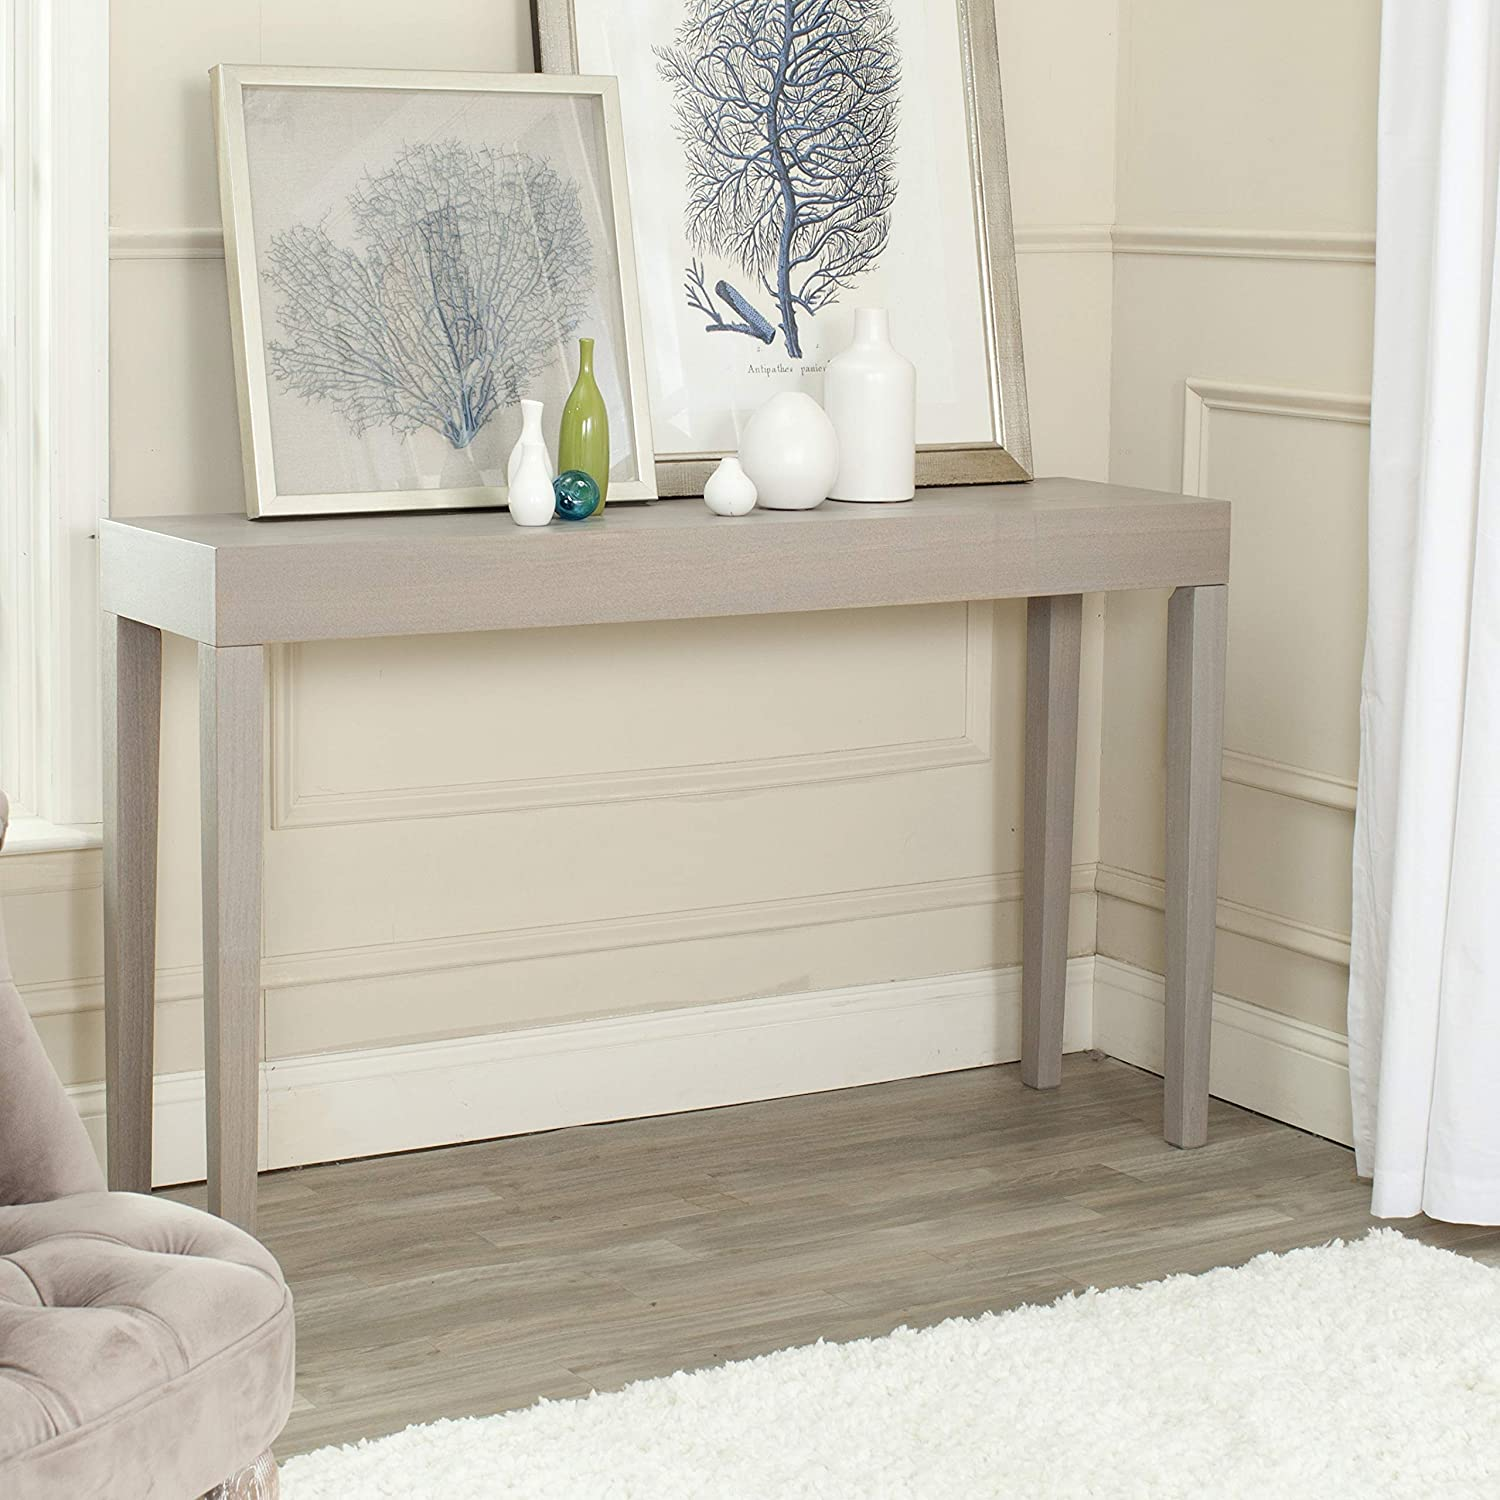 Safavieh Home Collection Kayson Grey Console Table